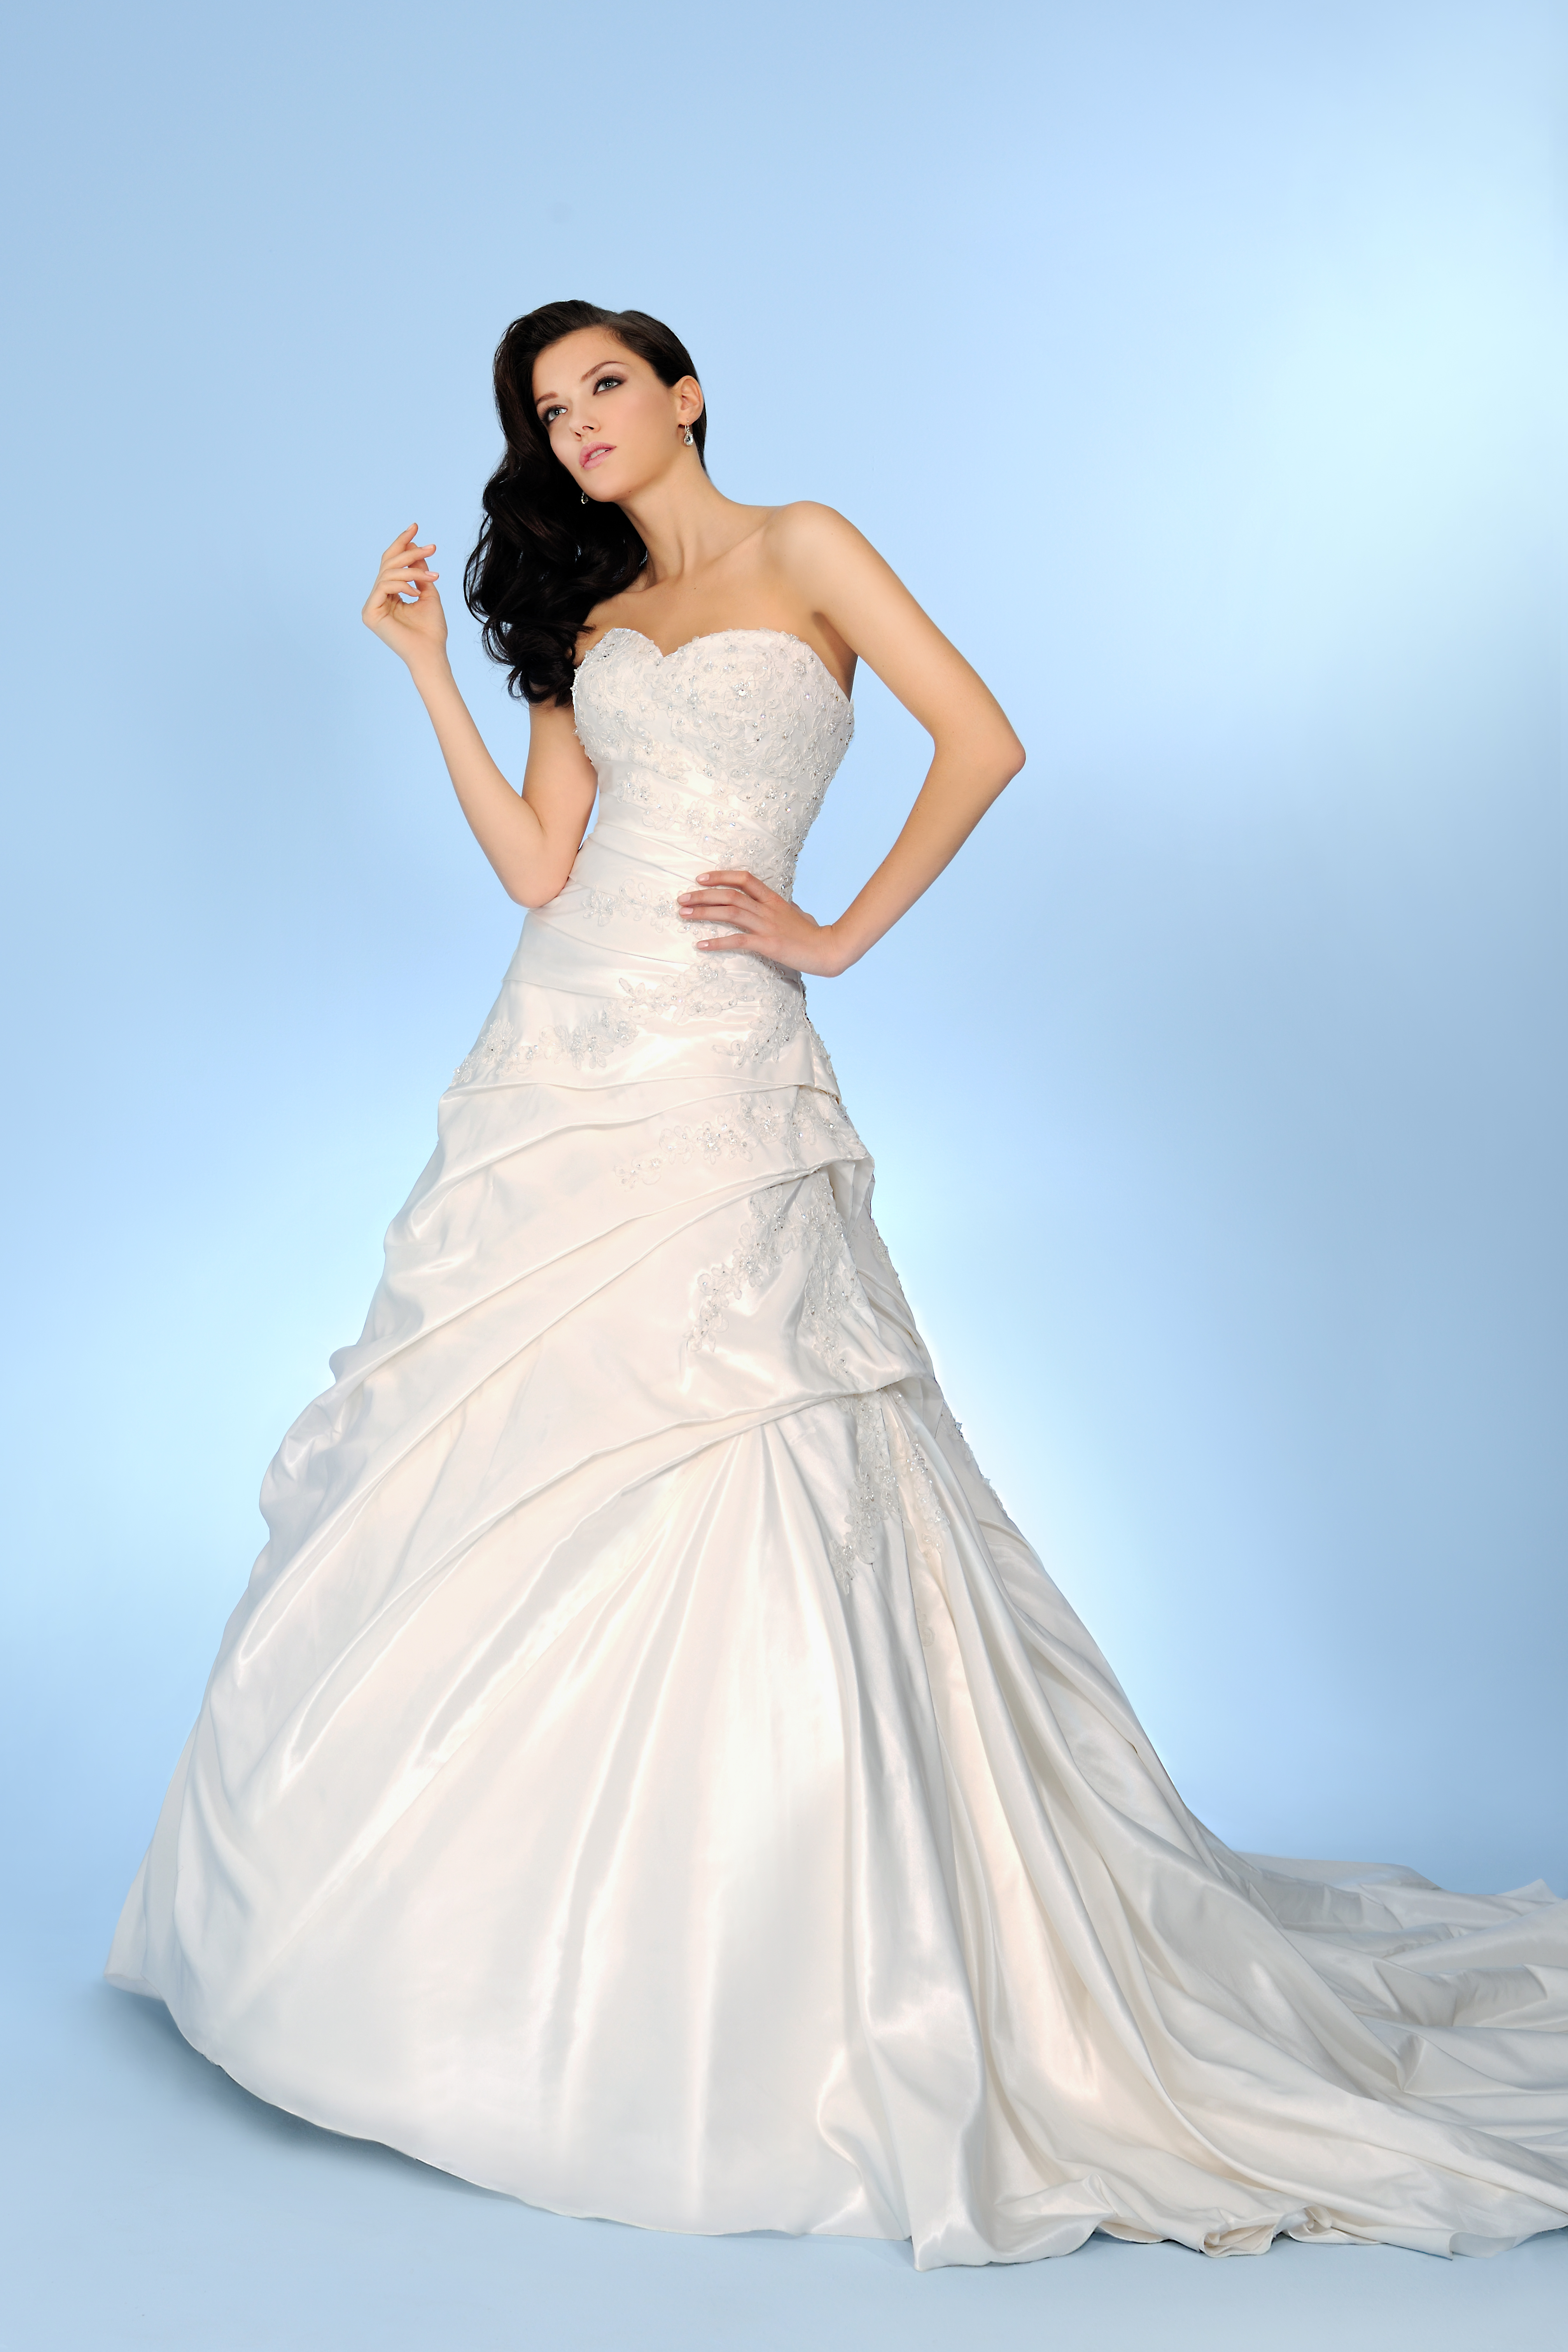 Your shape your style ? Choosing the Wedding Dress that s right